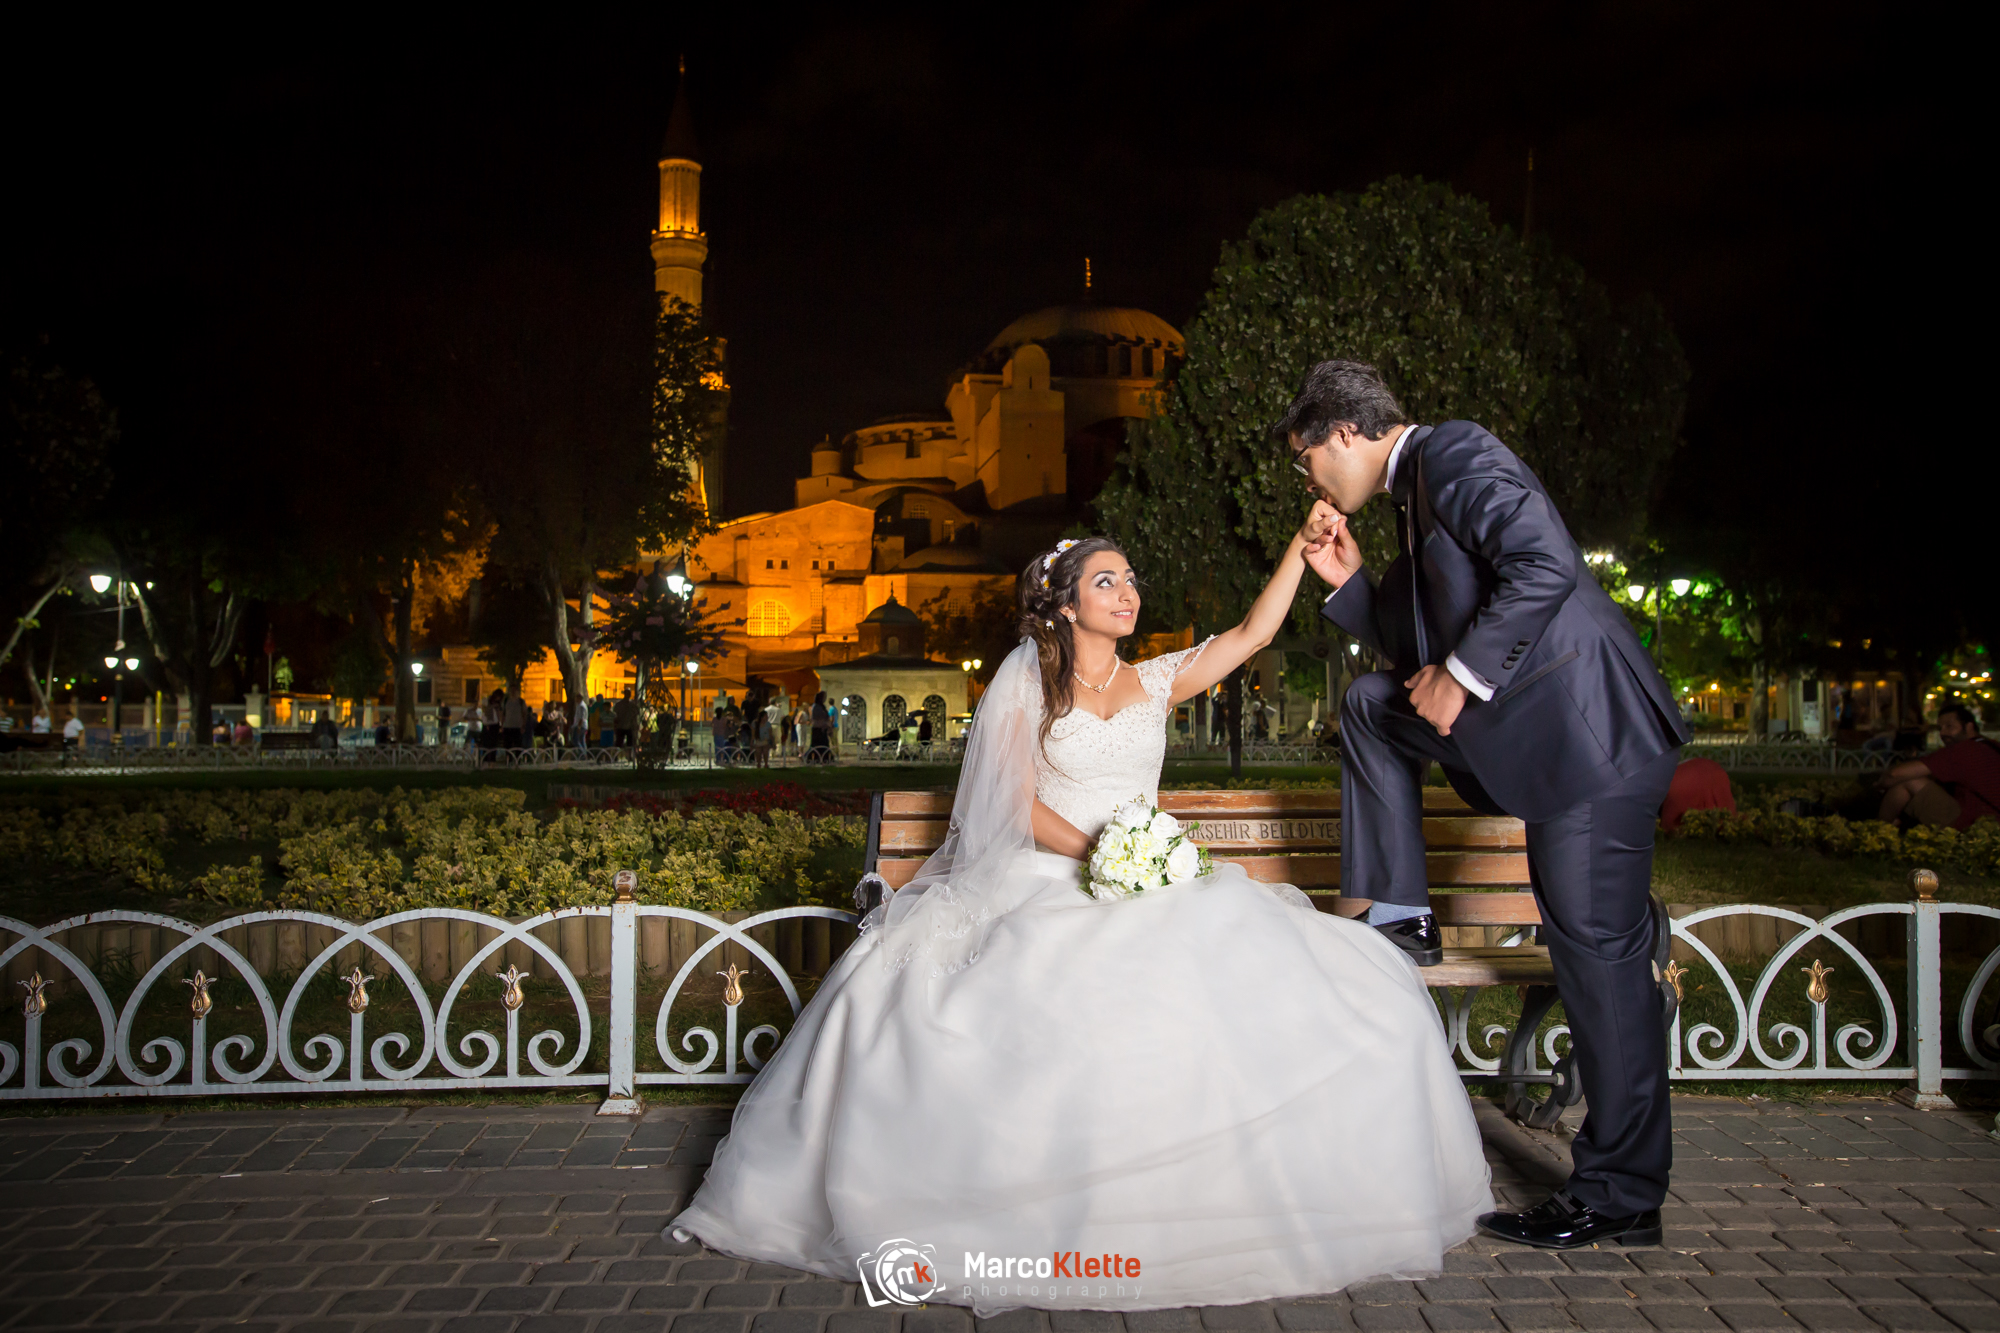 instanbul-wedding-web-63